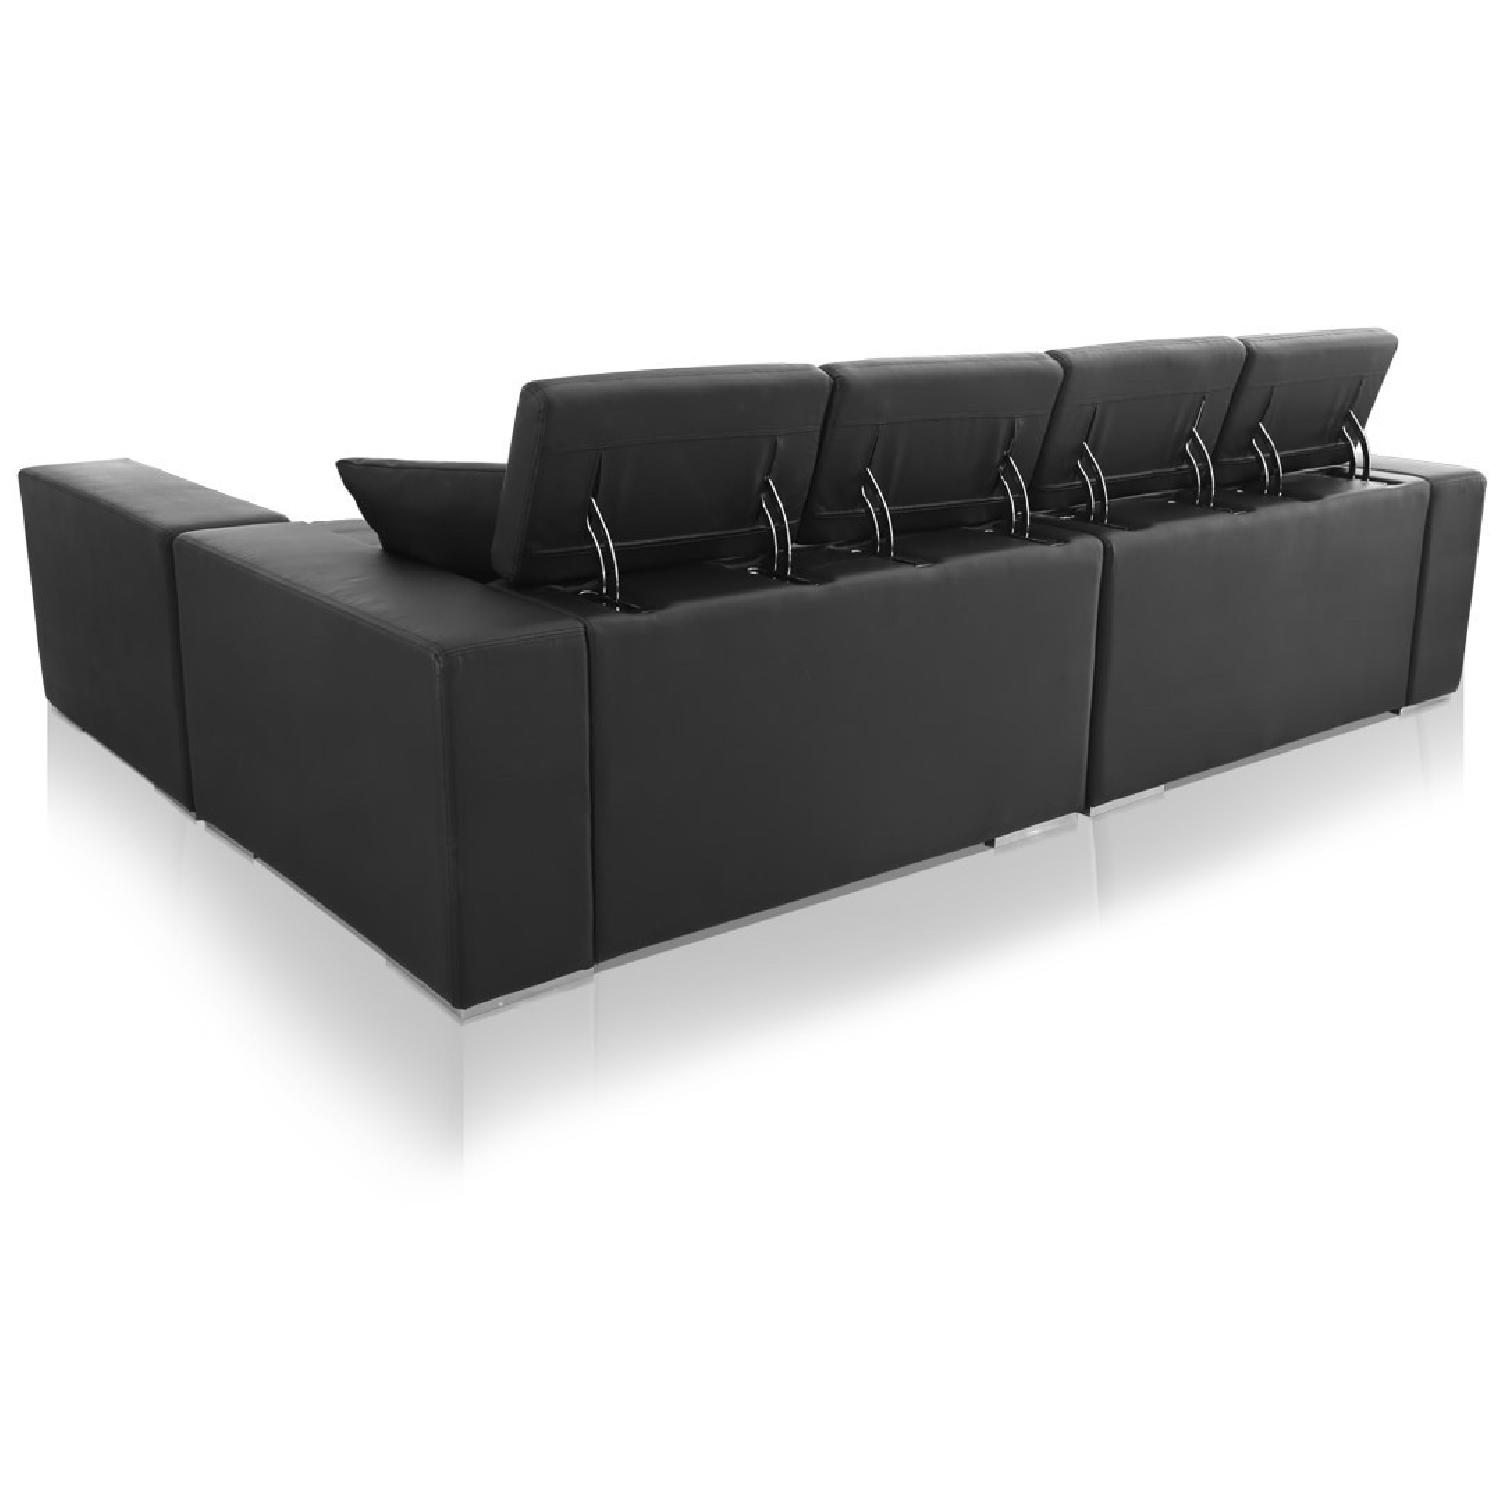 Monaco Leather Modern Sectional Sofa in Black - image-1